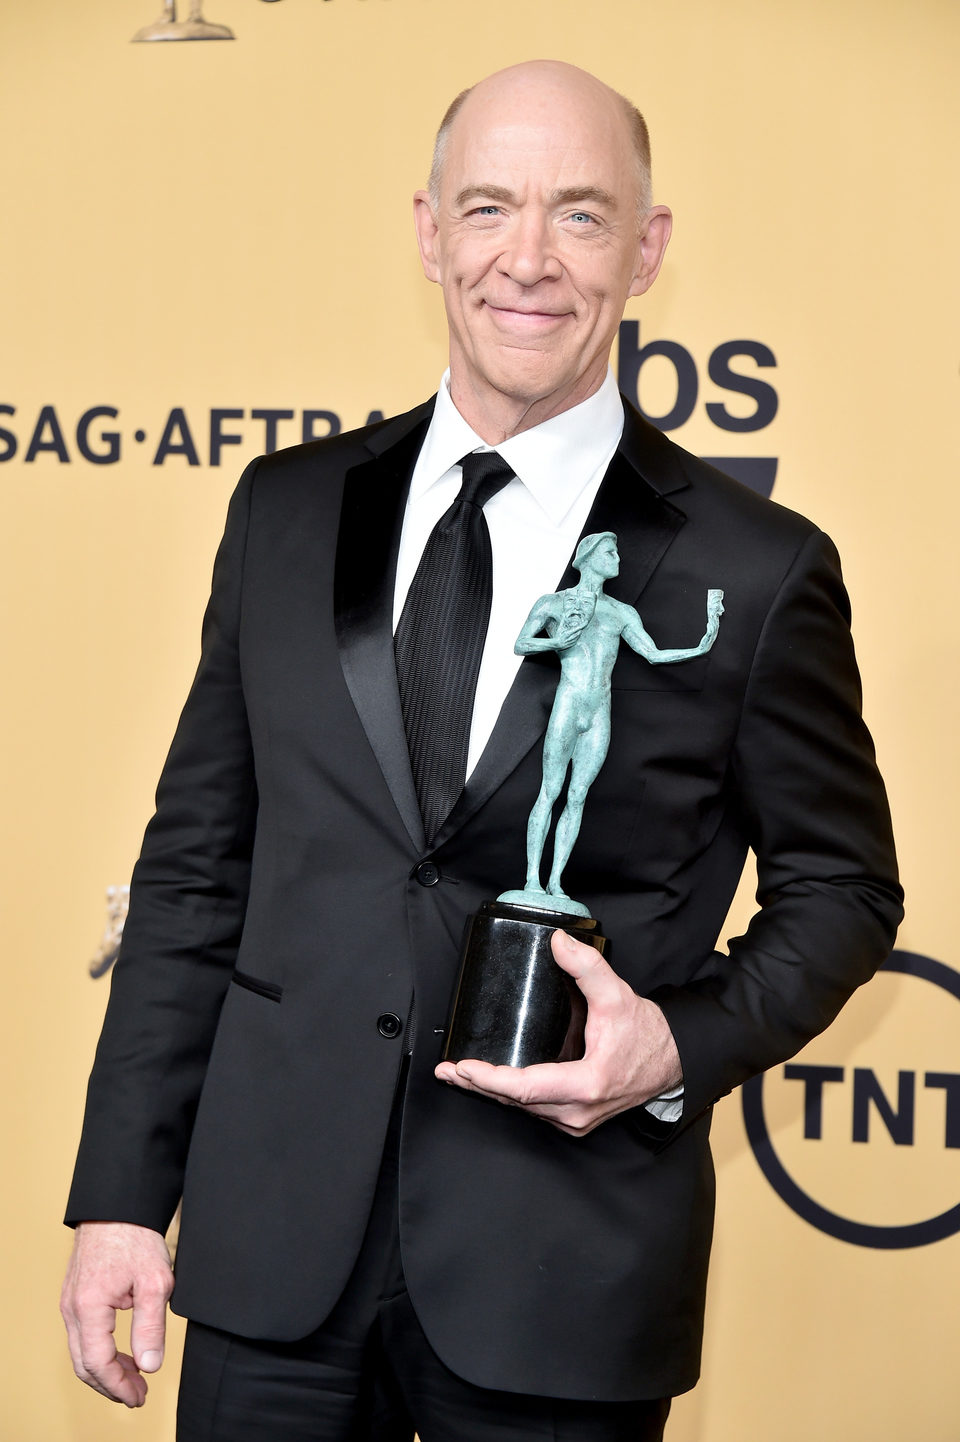 J.K. Simmons, winner of the SAG 2015, for the Best Supporting Actor